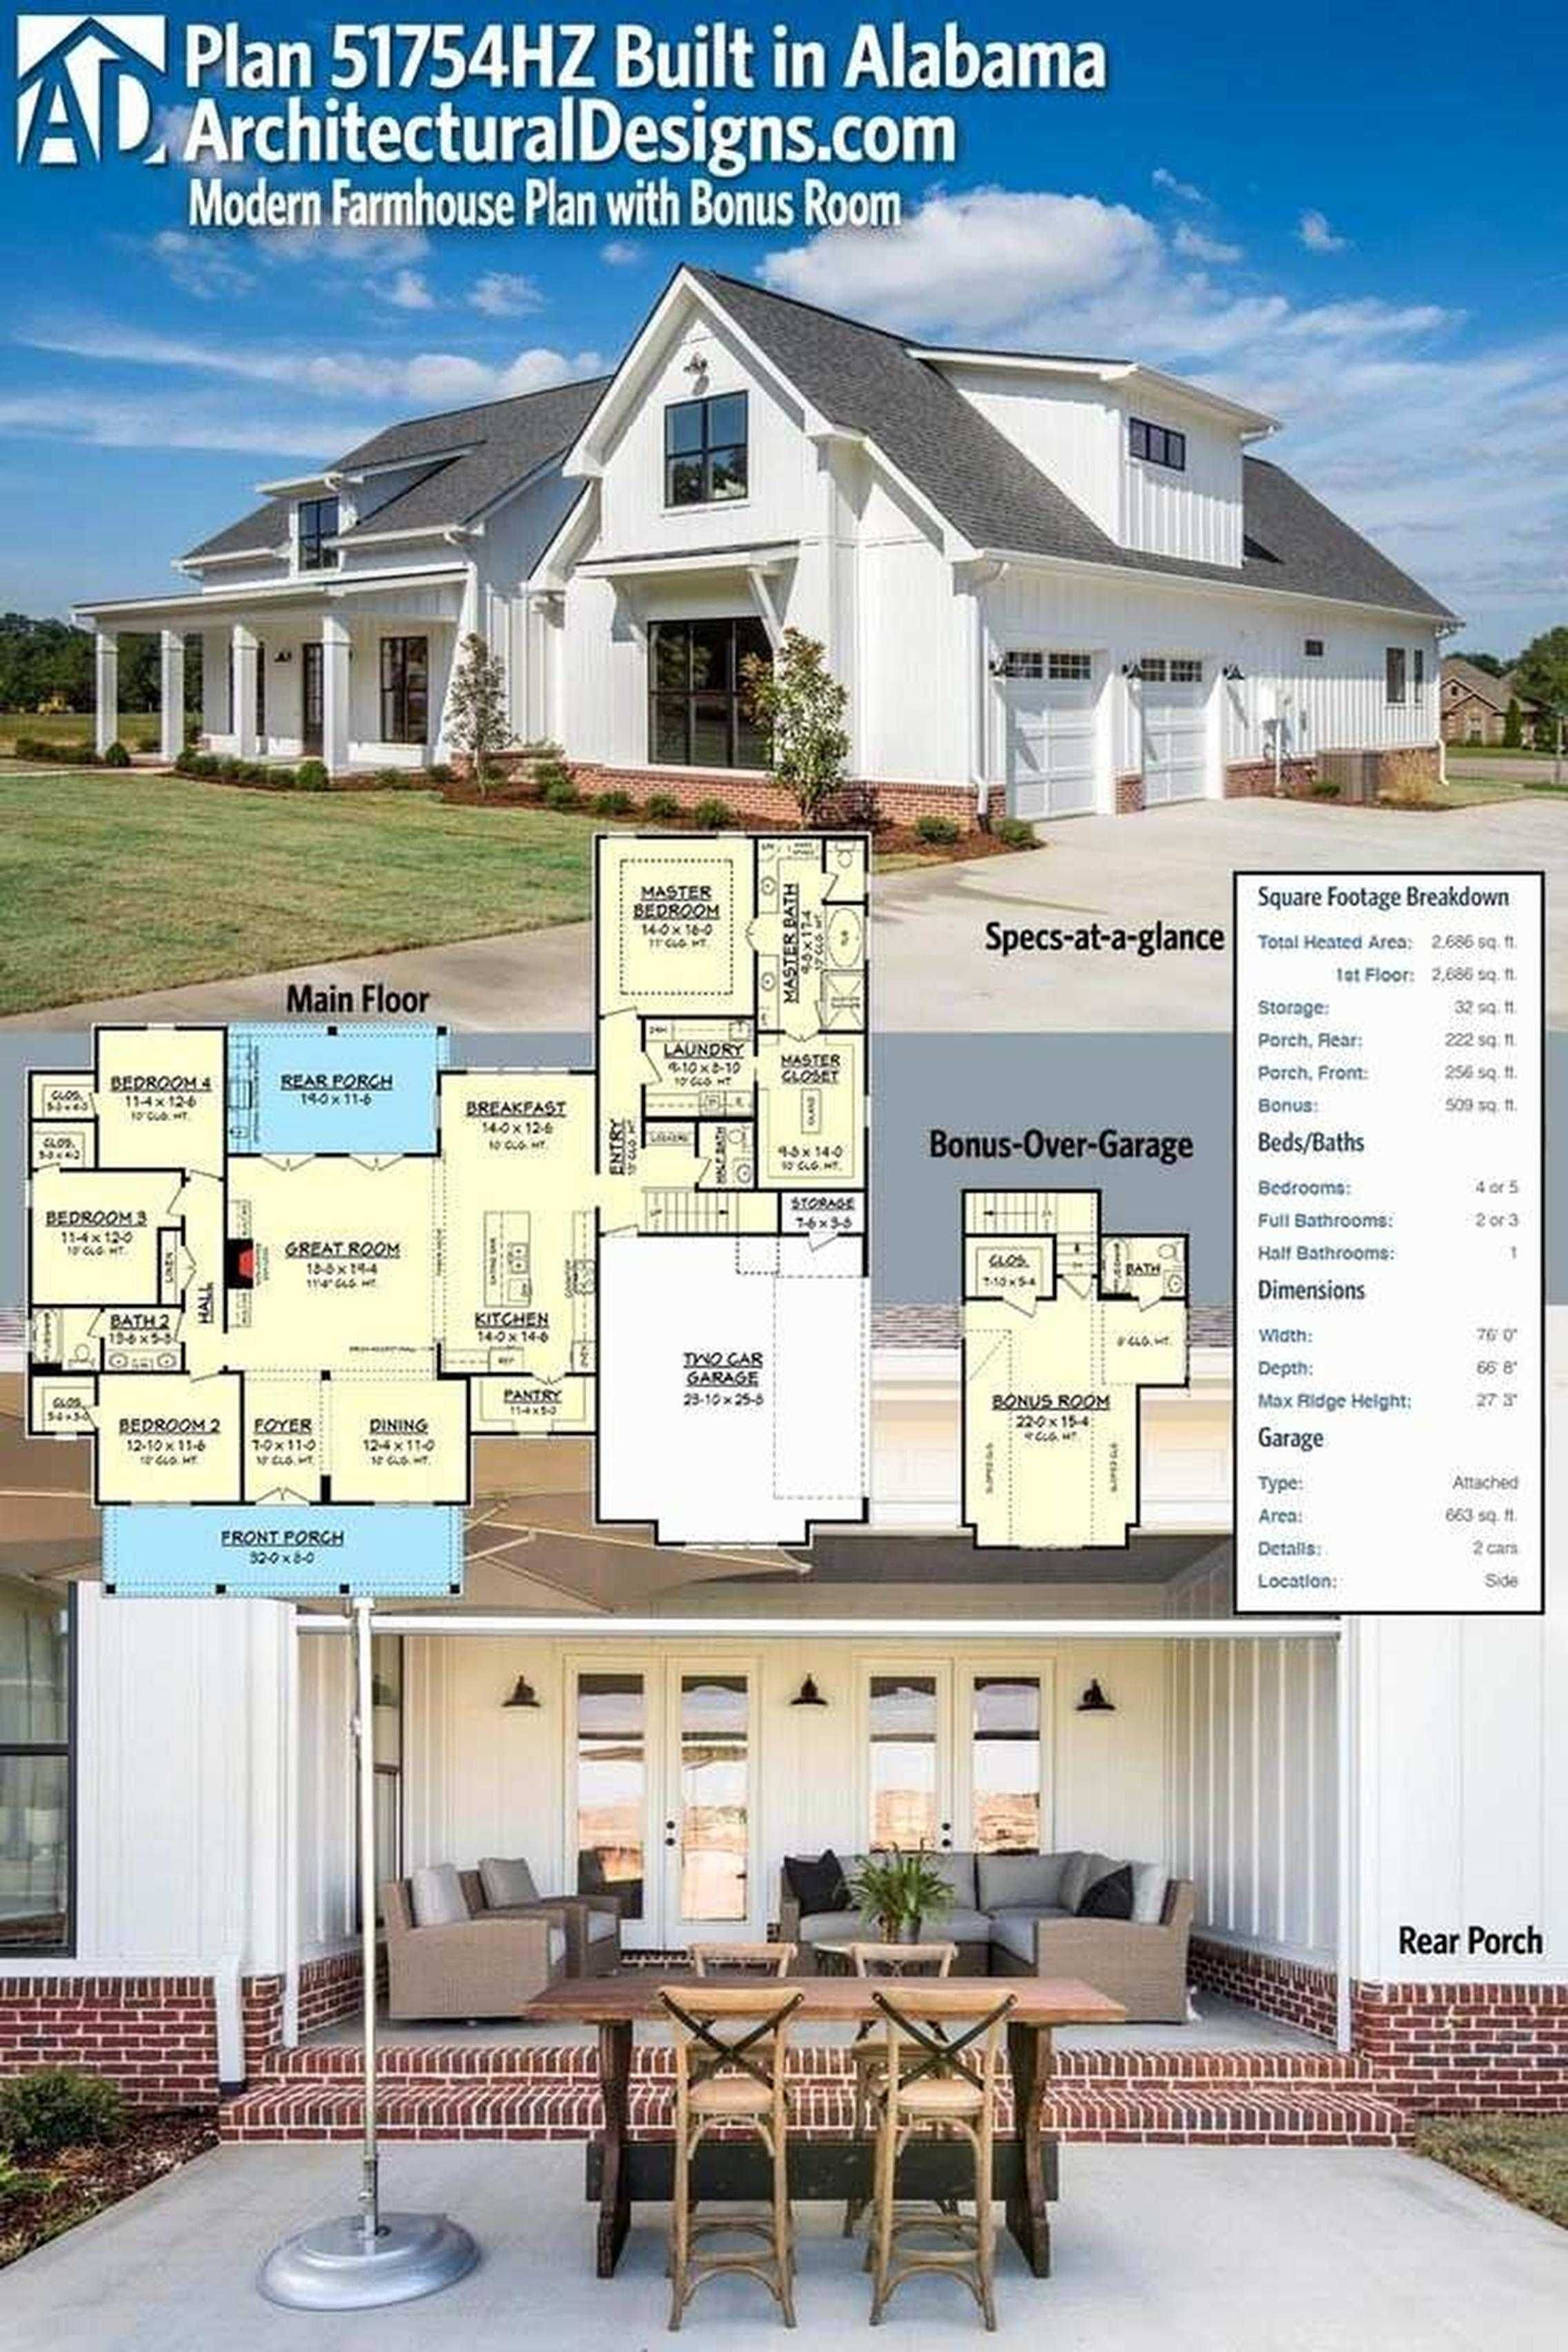 One Story Farmhouse Plans Wrap Around Porch Beautiful One Story Farmhouse Plans Wrap Around Porch Modern Farmhouse Plans Farmhouse Plans Country House Plans